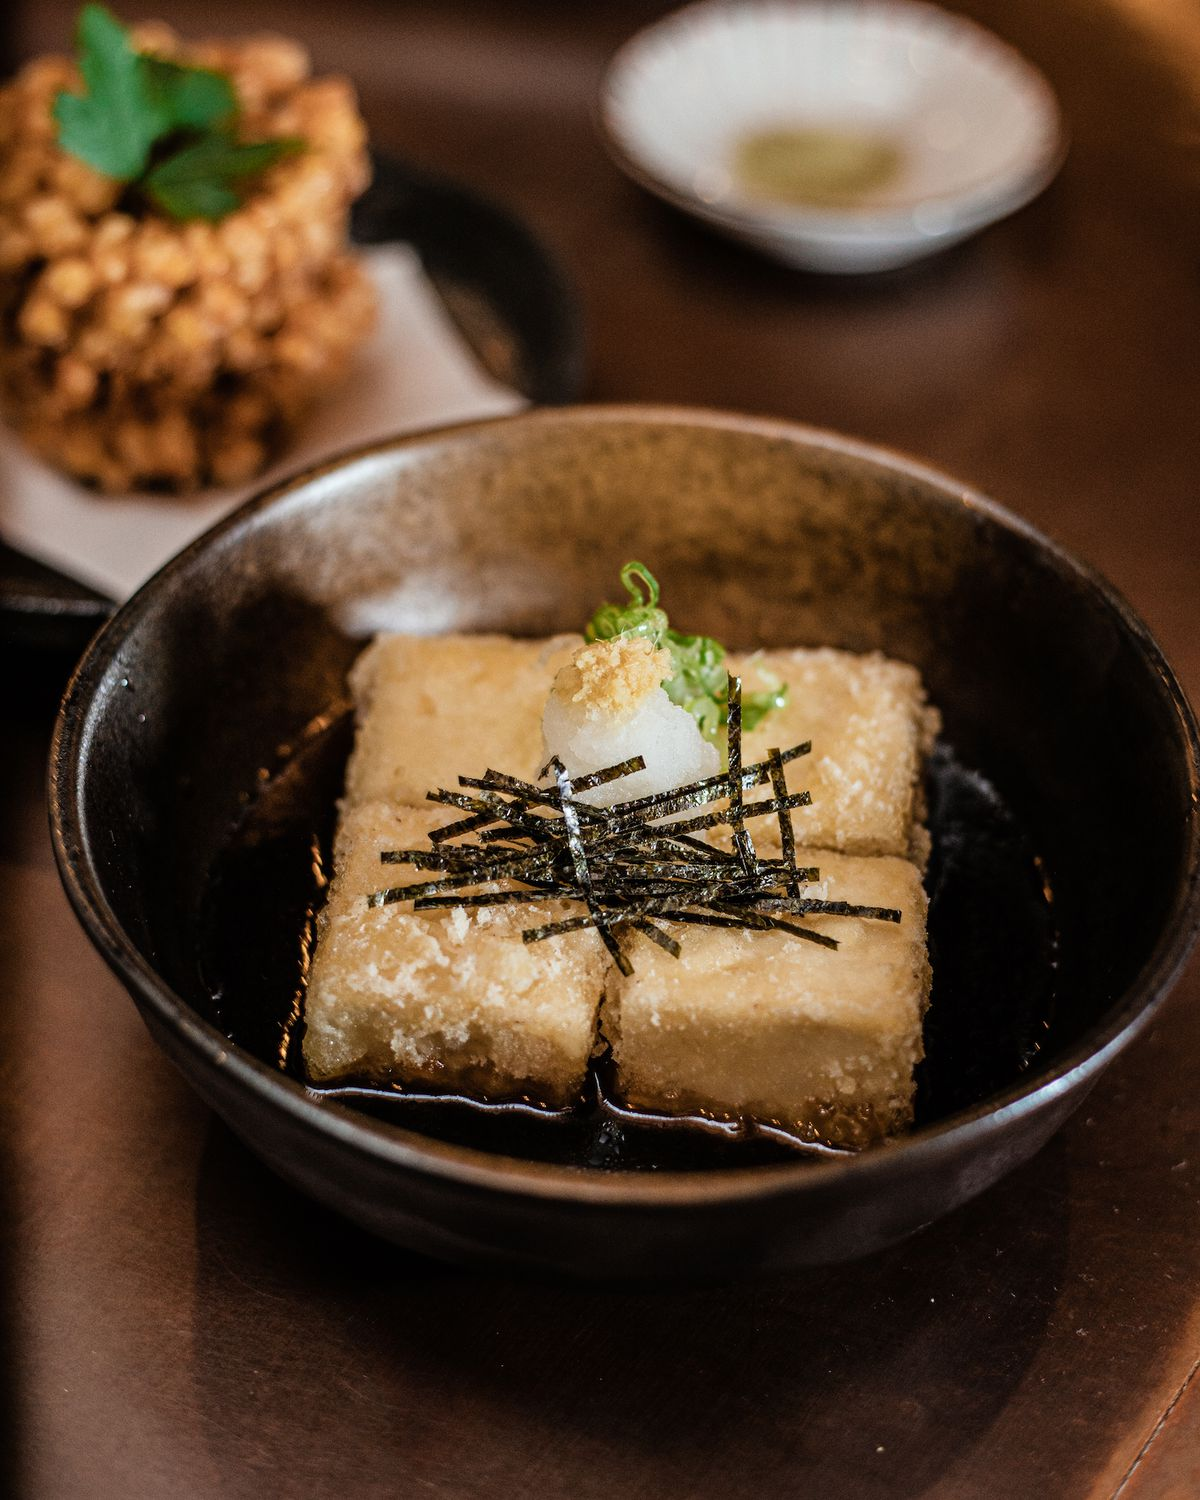 Golden-brown pieces of tofu sit in a black sauce and are topped with pieces of radish and slices of nori.